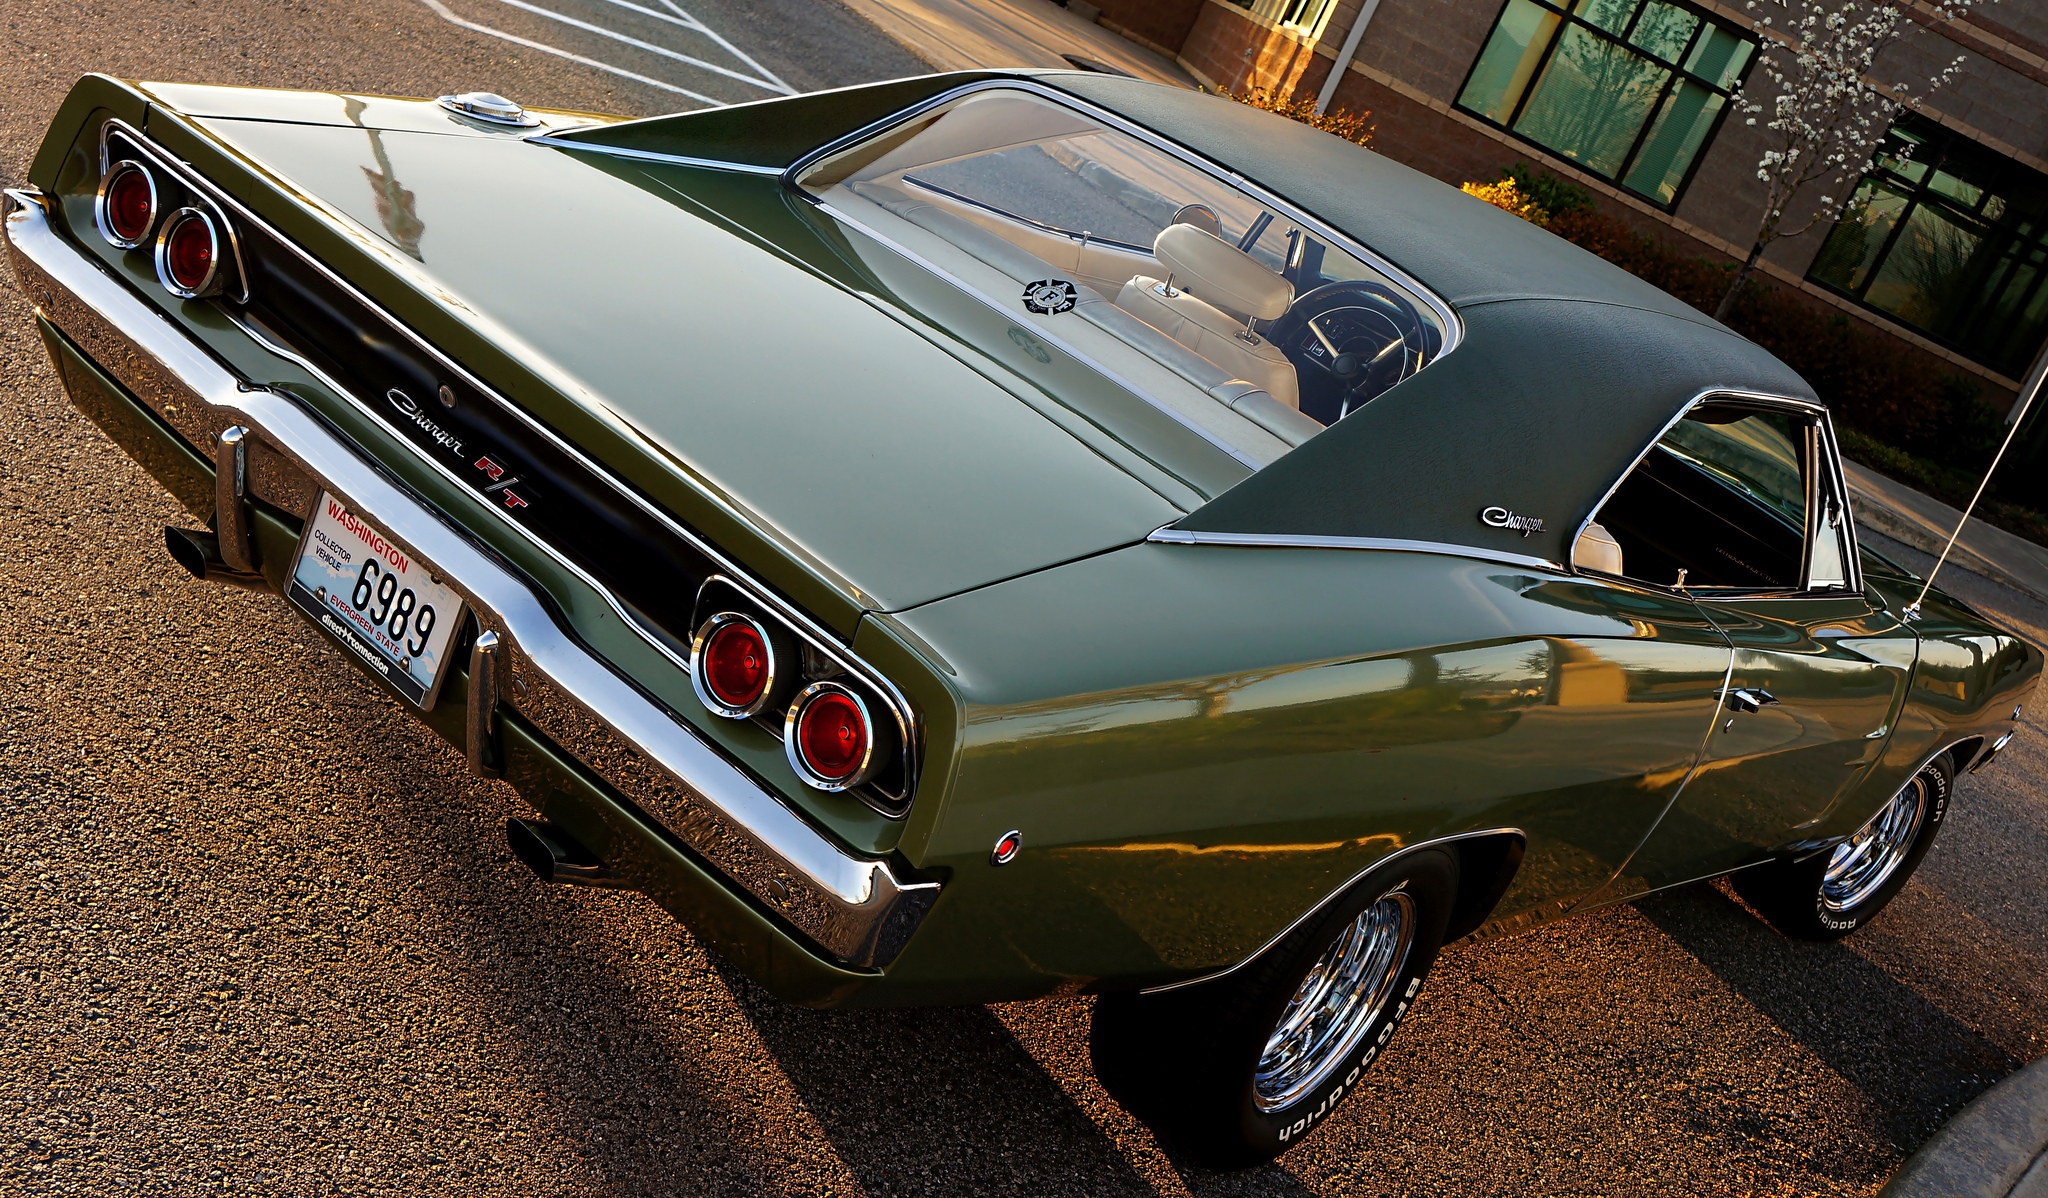 Dodge Charger 440 R/T